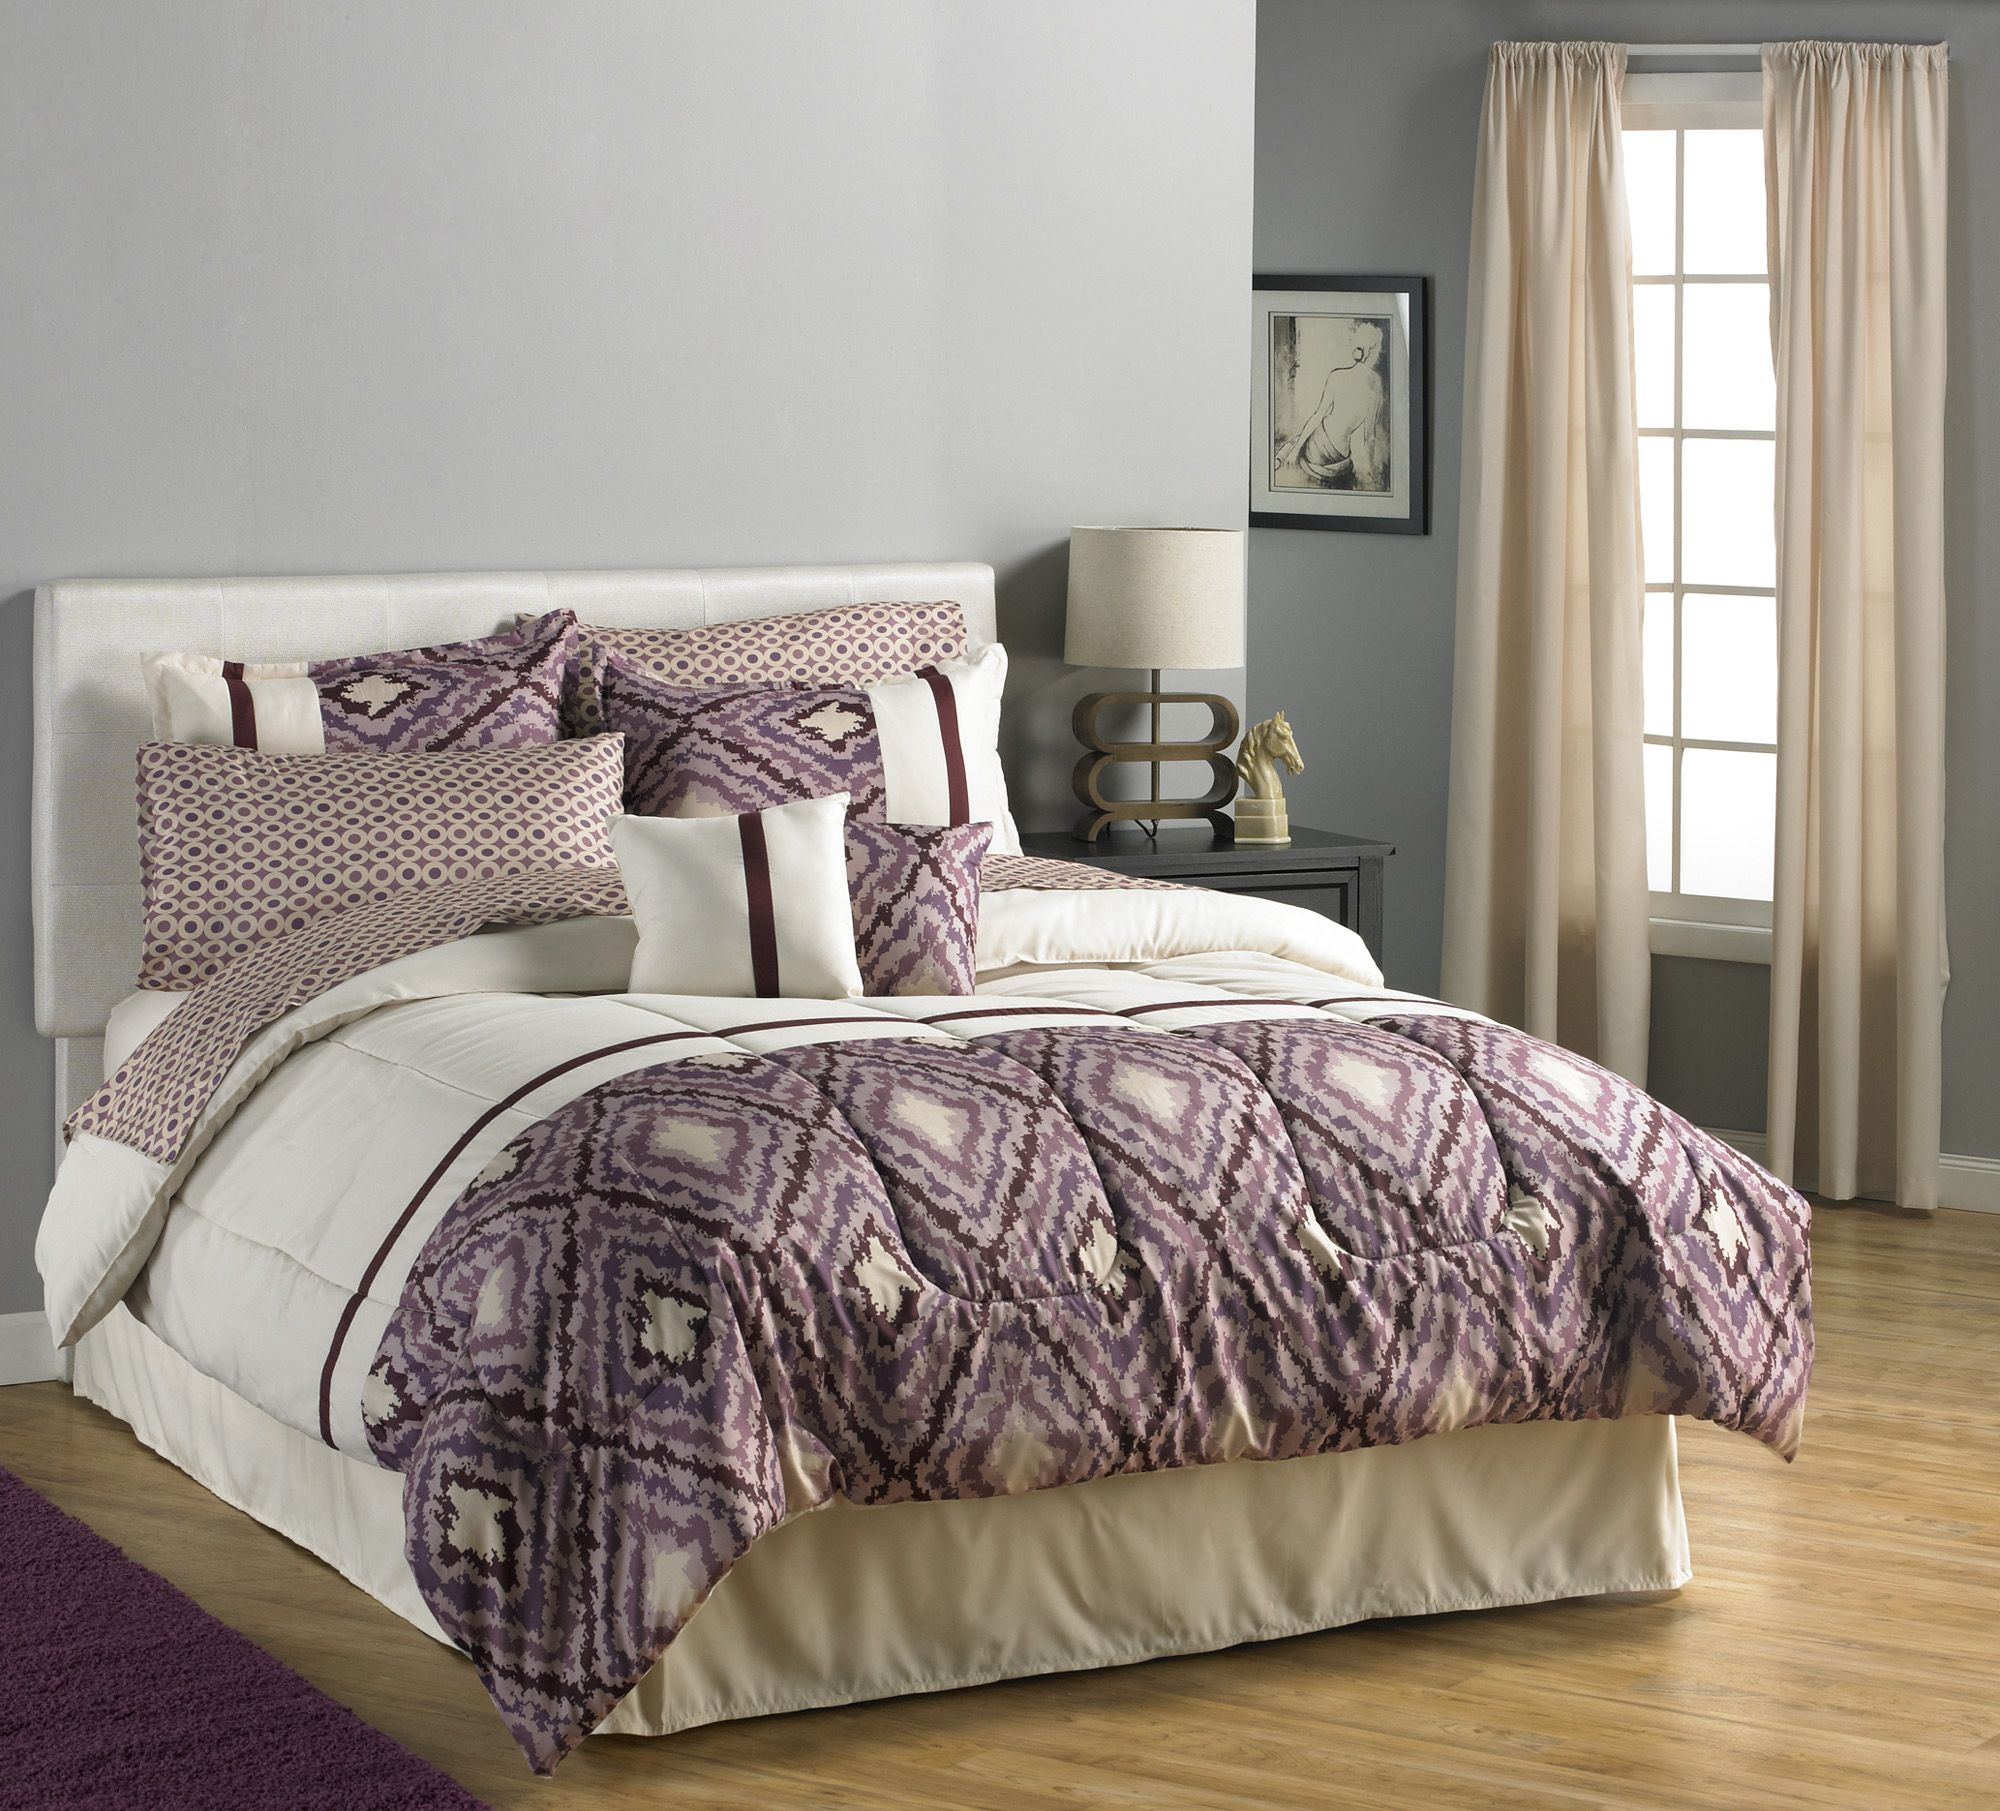 Queen Comforter Sets With Curtains Queen Comforter Sets with Sheets